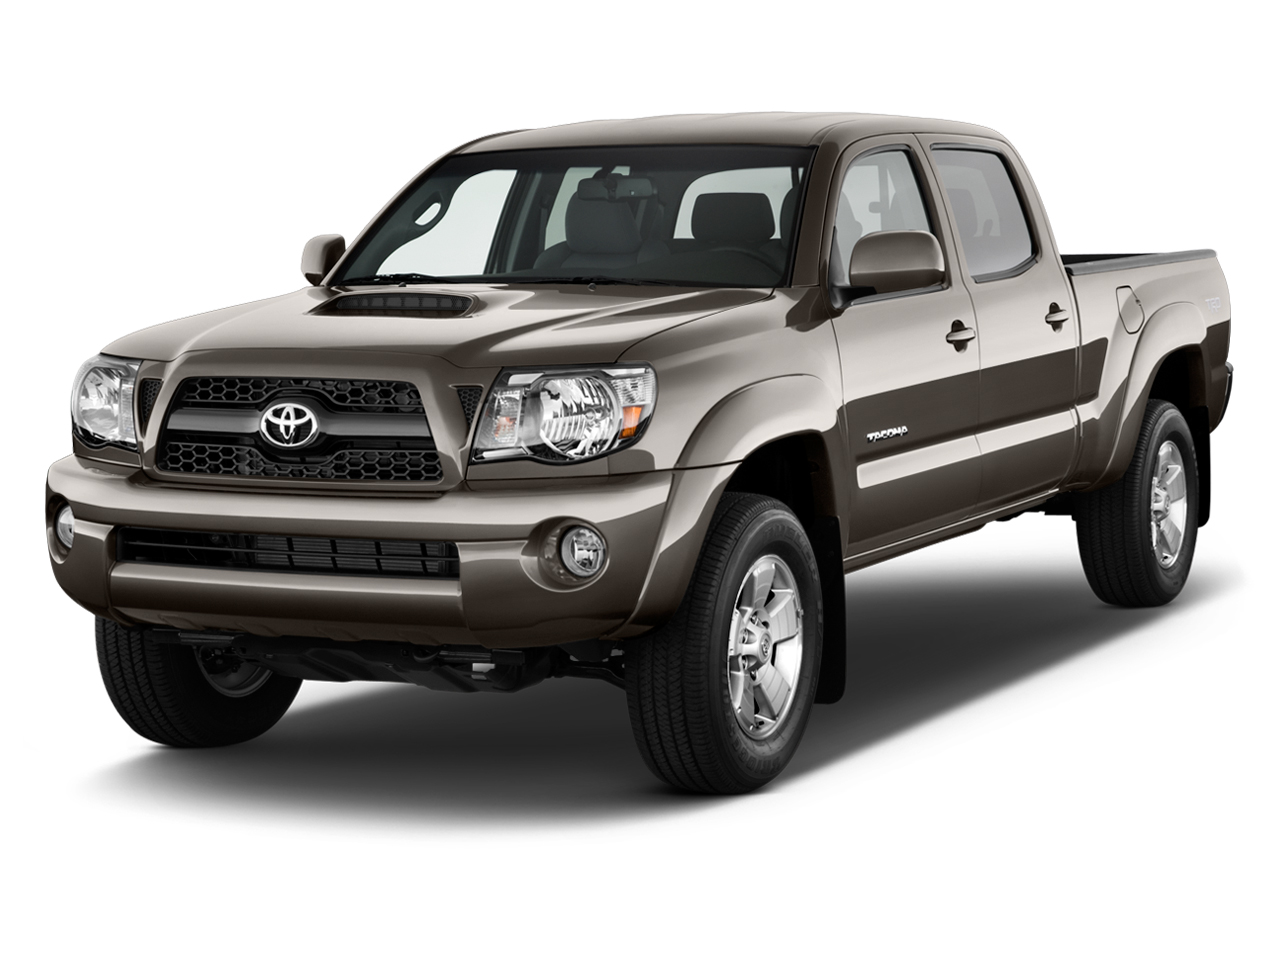 2011 Toyota Tacoma Review Ratings Specs Prices And